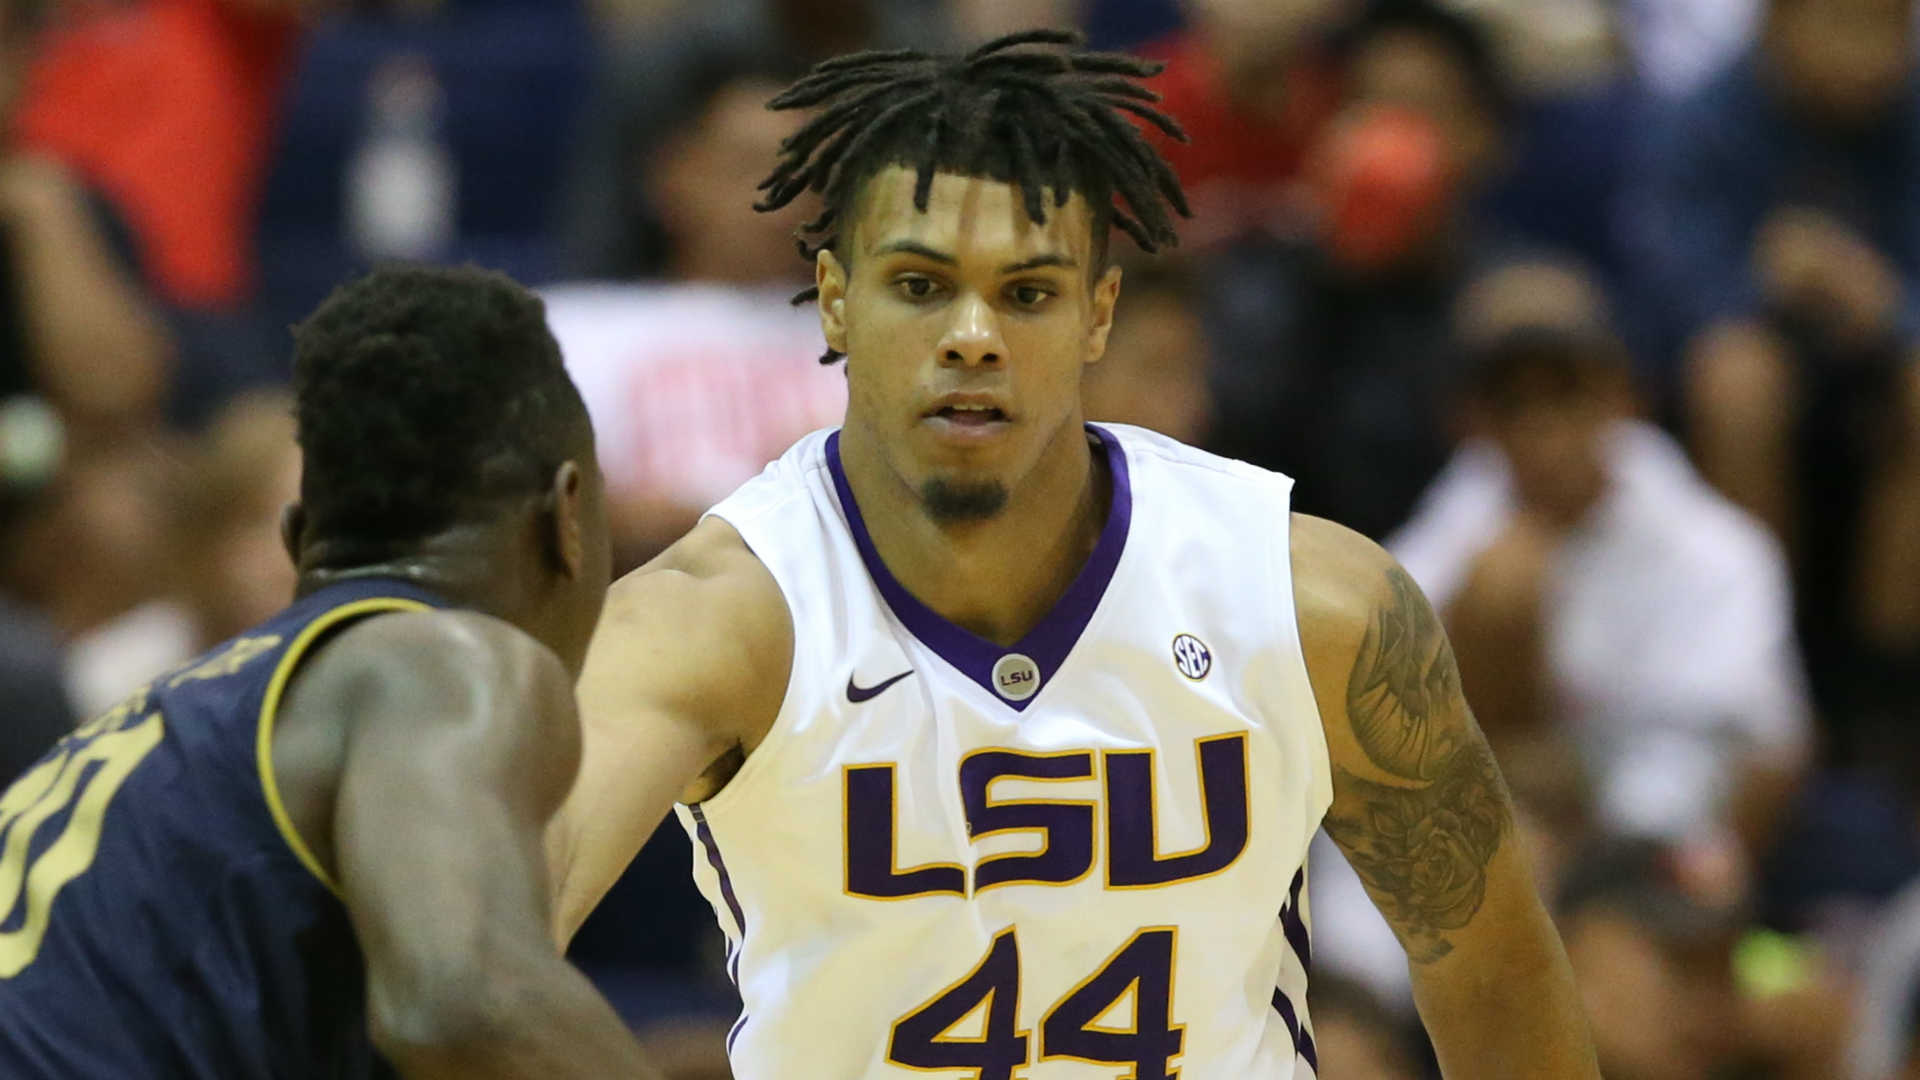 LSU basketball player killed in shooting; police release video of fighting